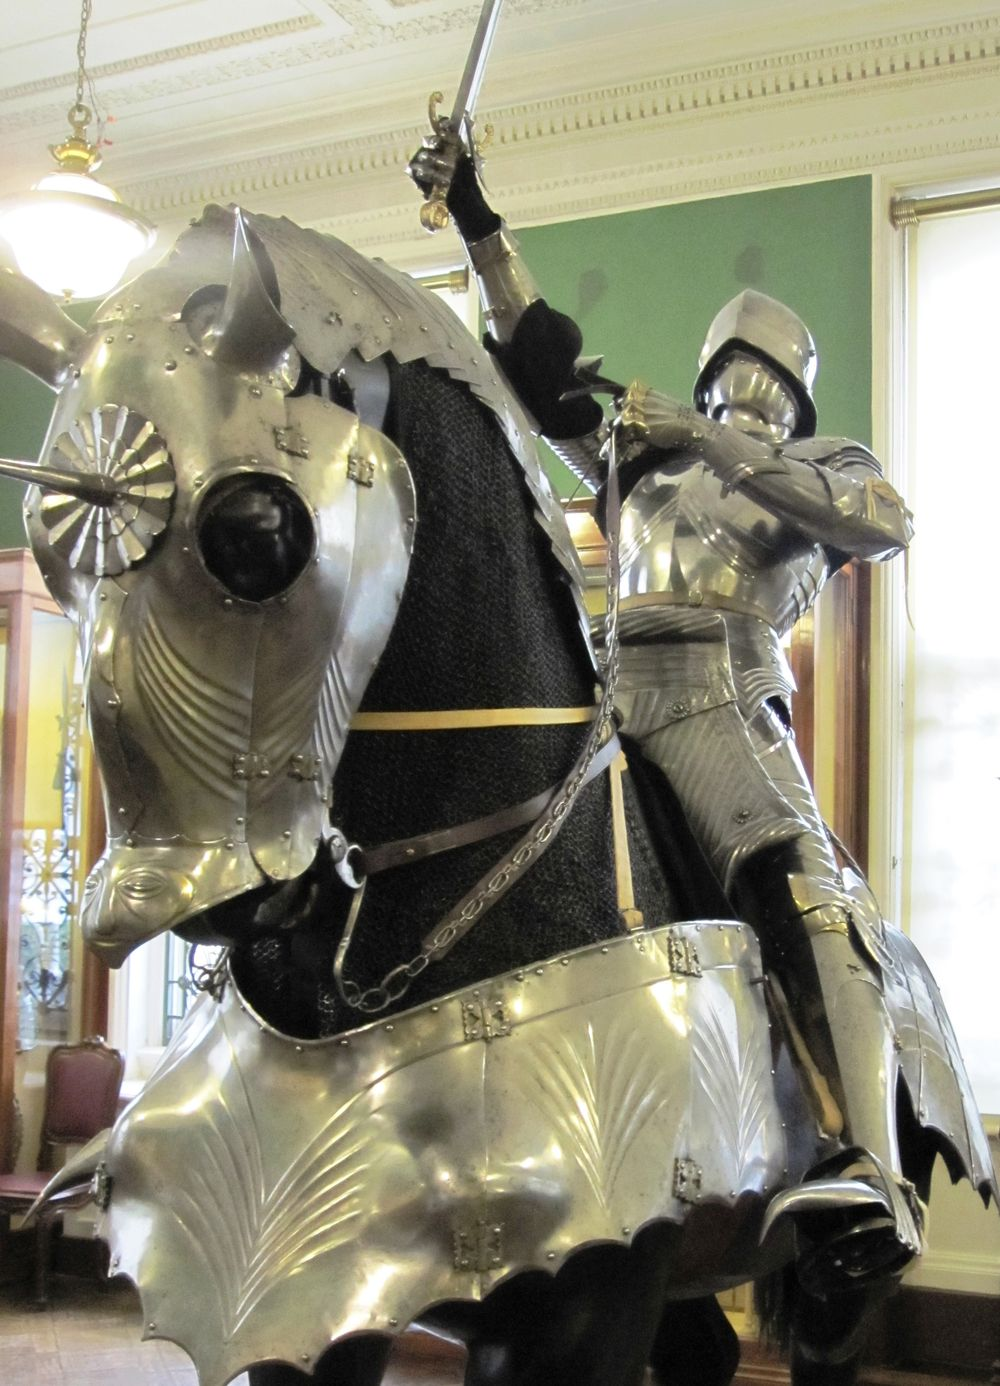 German Gothic armor for horse, XV c., Wallace Collection, London